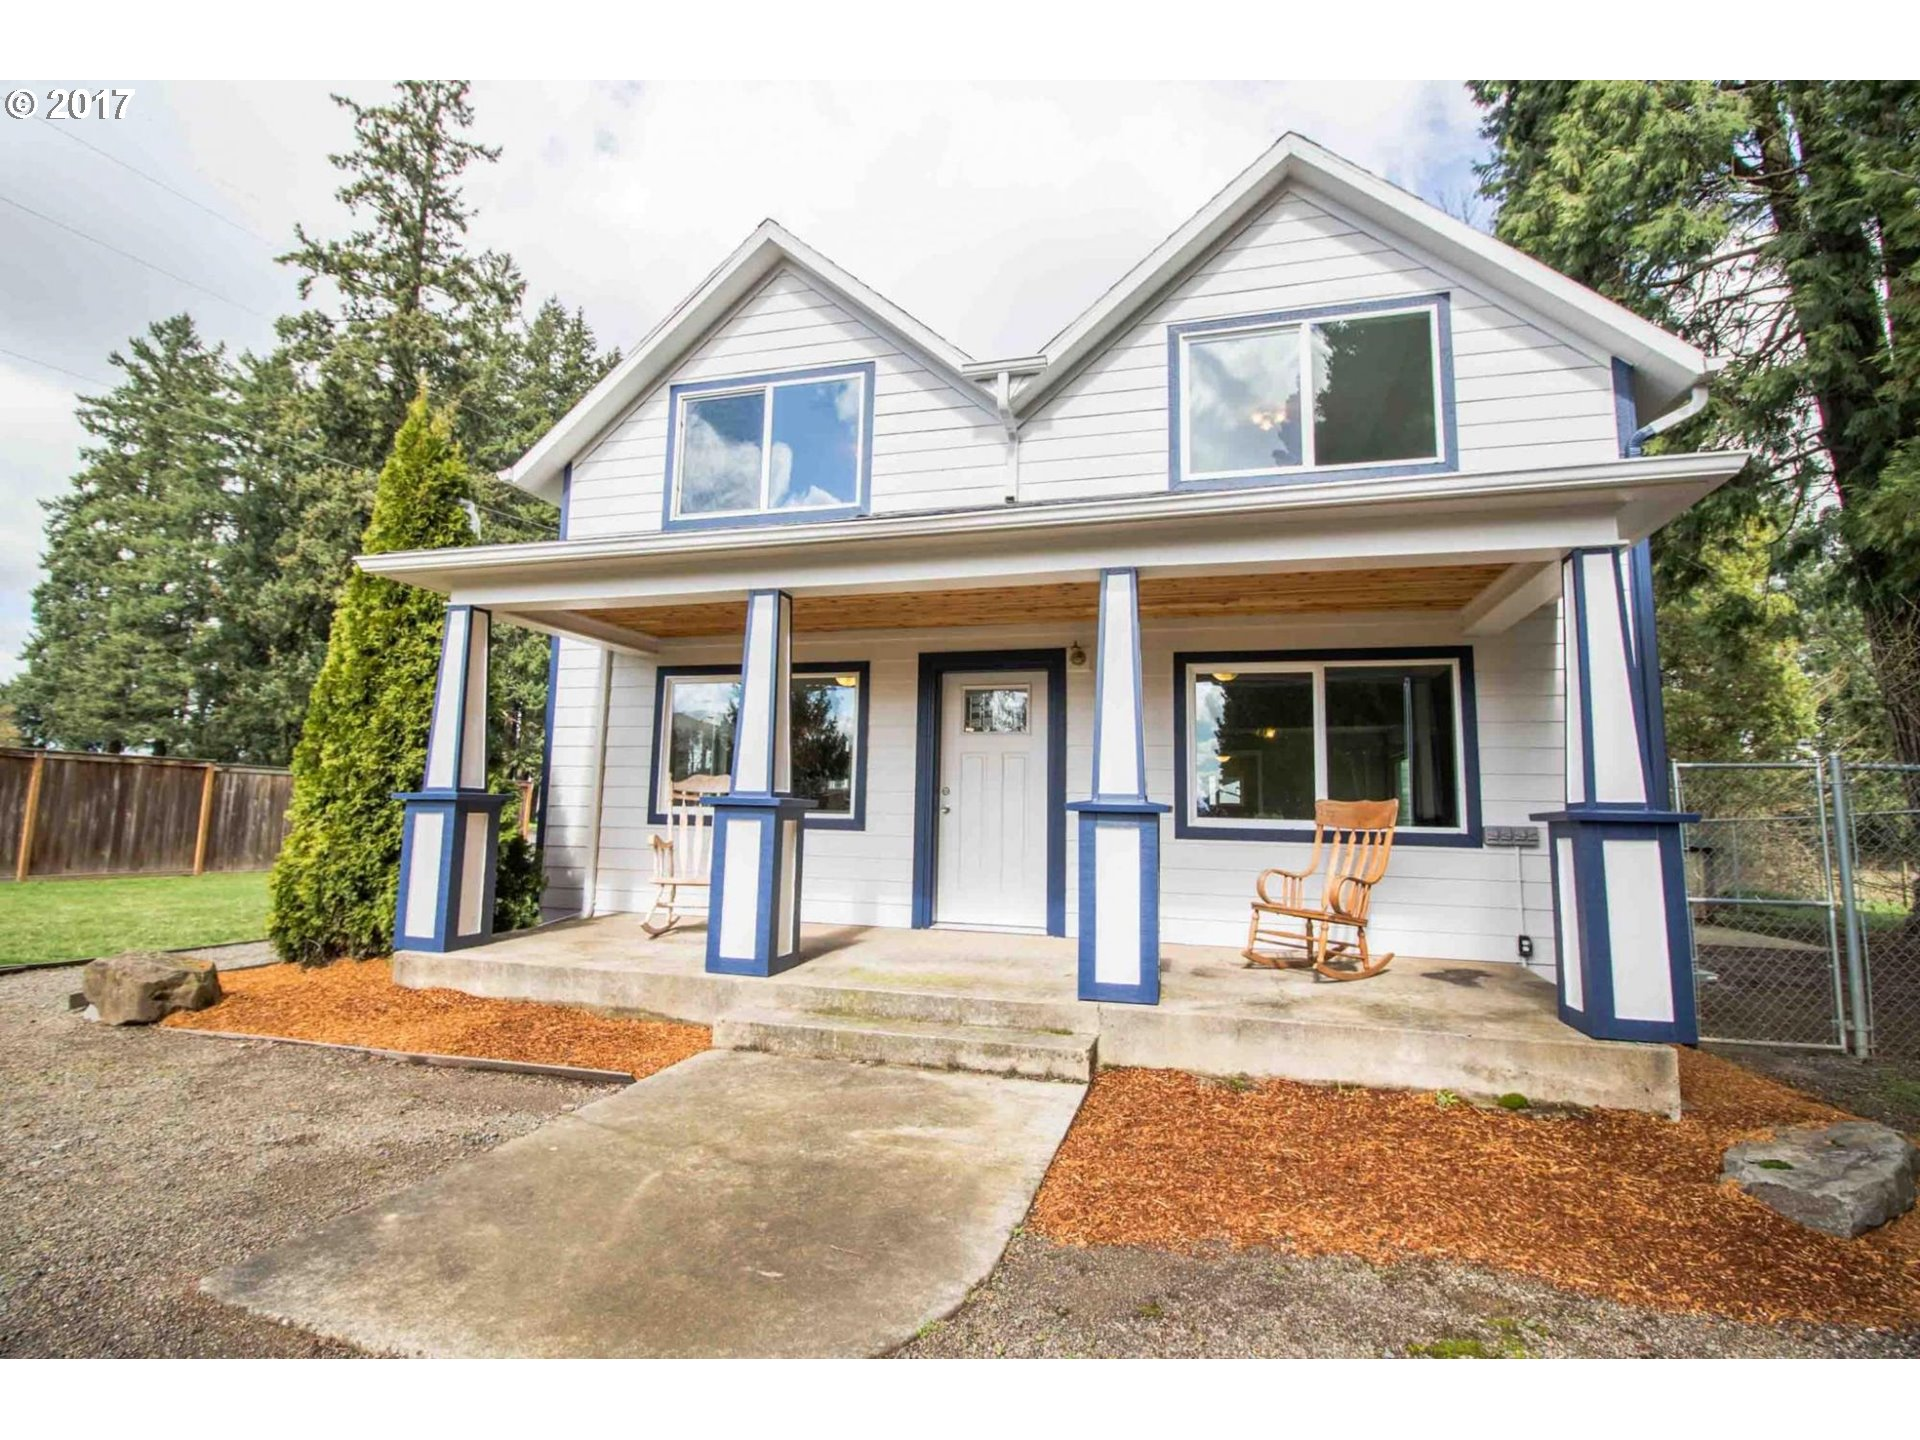 470 S SEQUOIA PKWY, Canby, OR 97013